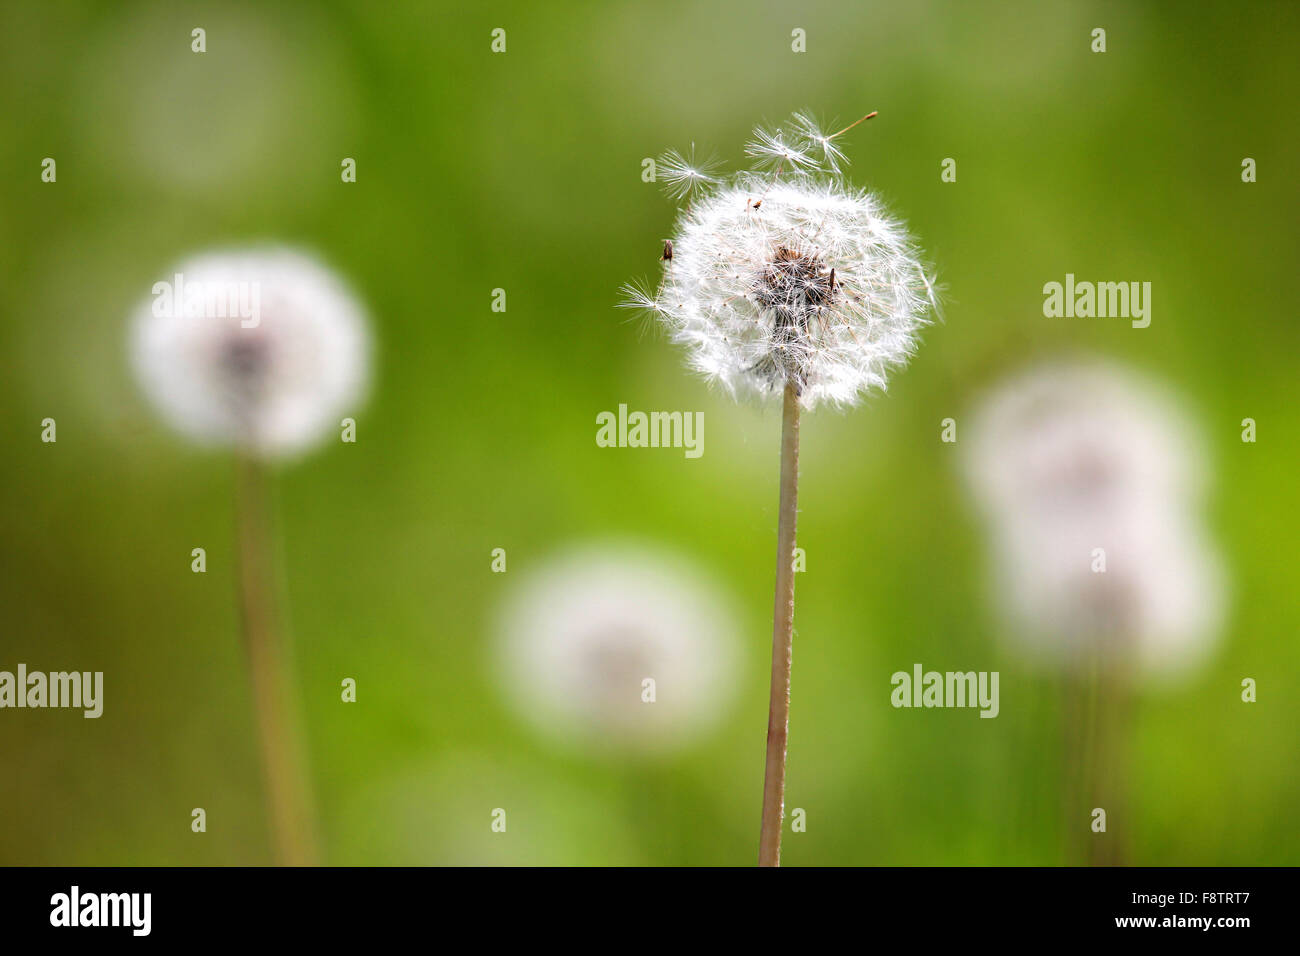 Macrophotography of white dandelion flowers Taraxacum officiale on green background - Stock Image